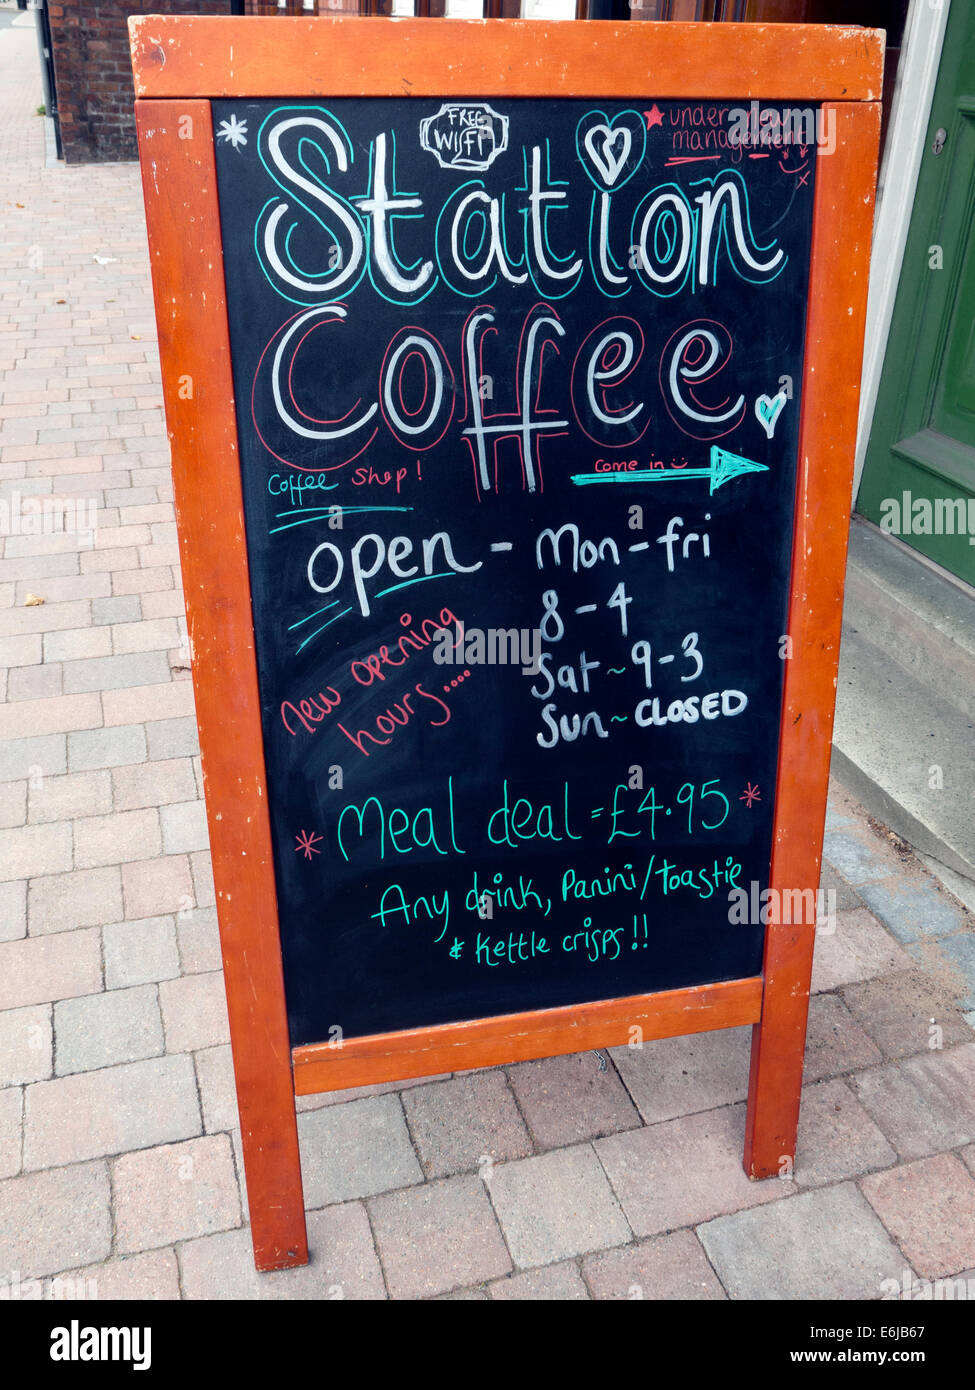 Station,Coffee,independent café,independent,café,resisting,Costa,and,Starbucks,outside blackboard,independent cafe,cafe,tea,english,meal deal,mealdeal,A,A-board,A Board,chalk,chalkboard,chalk board,costa and Starbucks,selling,shop,drink,drinks,cake,cakes,gotonysmith,opening,hours,times,on a blackboard,Buy Pictures of,Buy Images Of